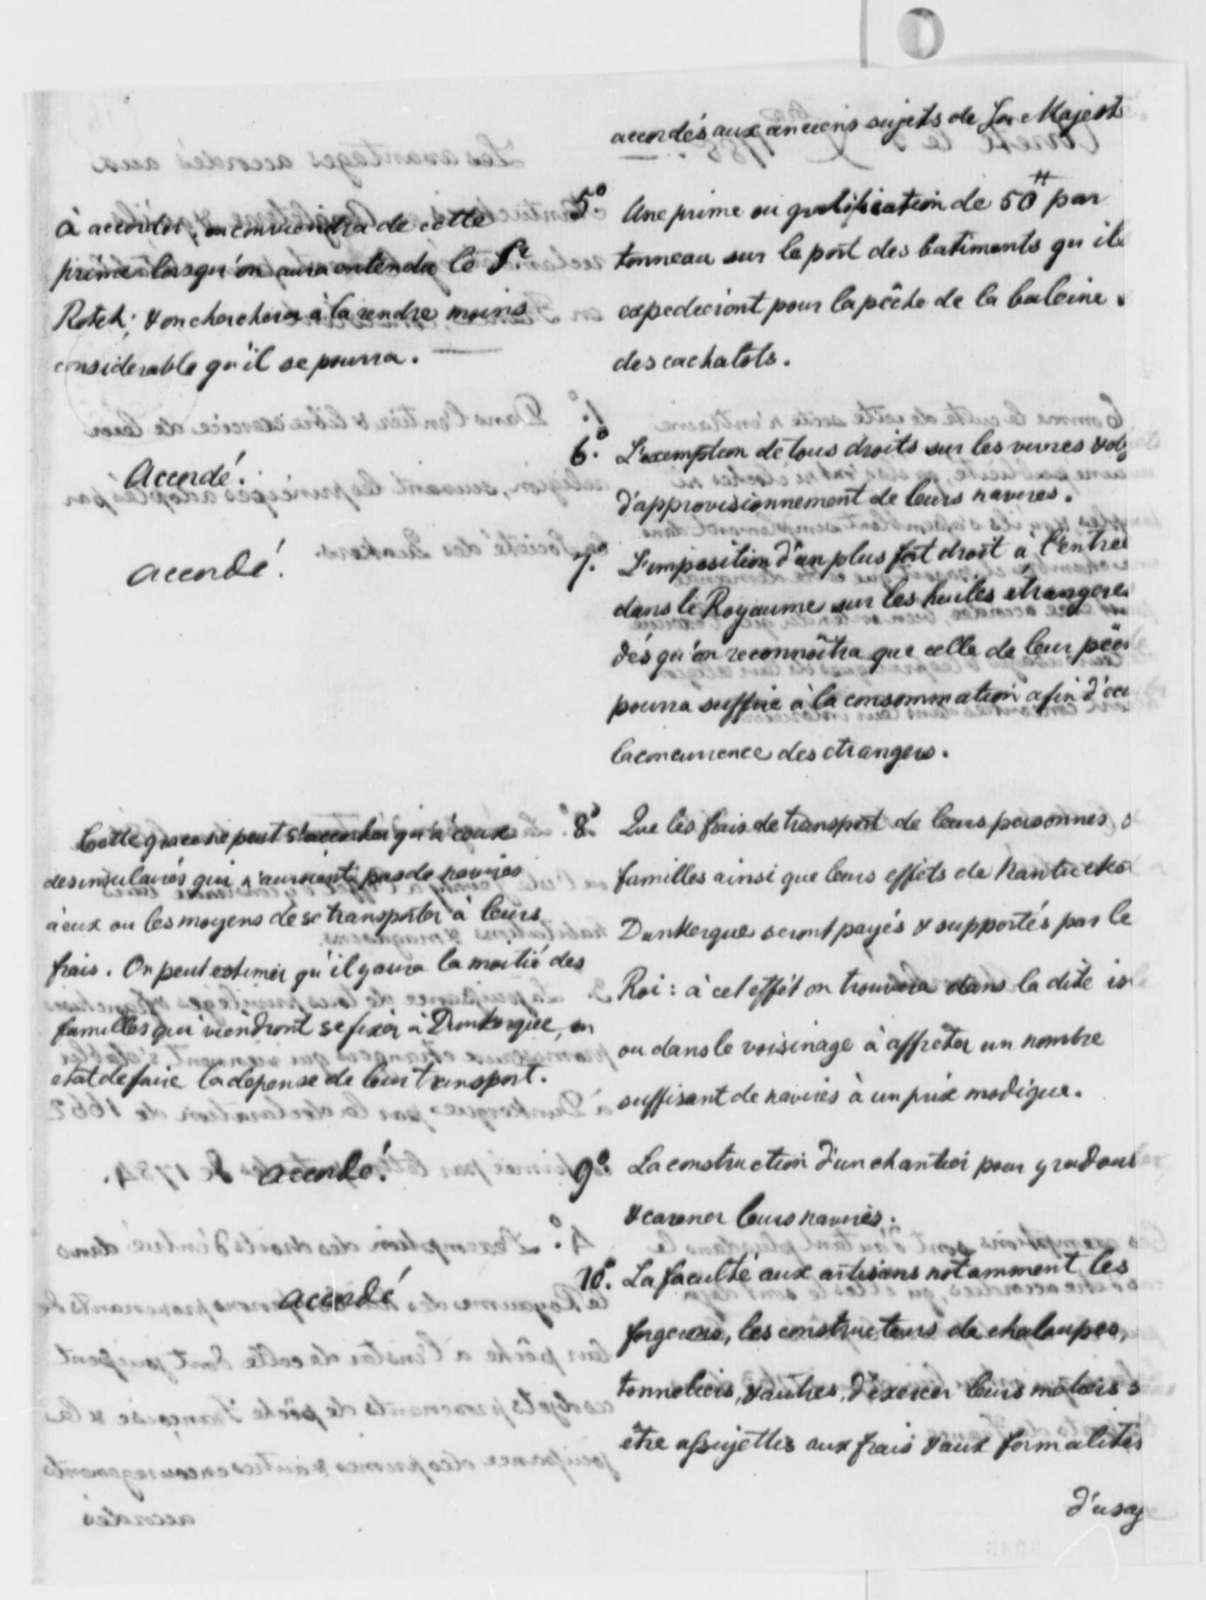 """Francois Rotch to """"le Controleur-general des finances"""", December 5, 1785, Memorial on Whale Fisheries; in French; with Arret and Copy"""